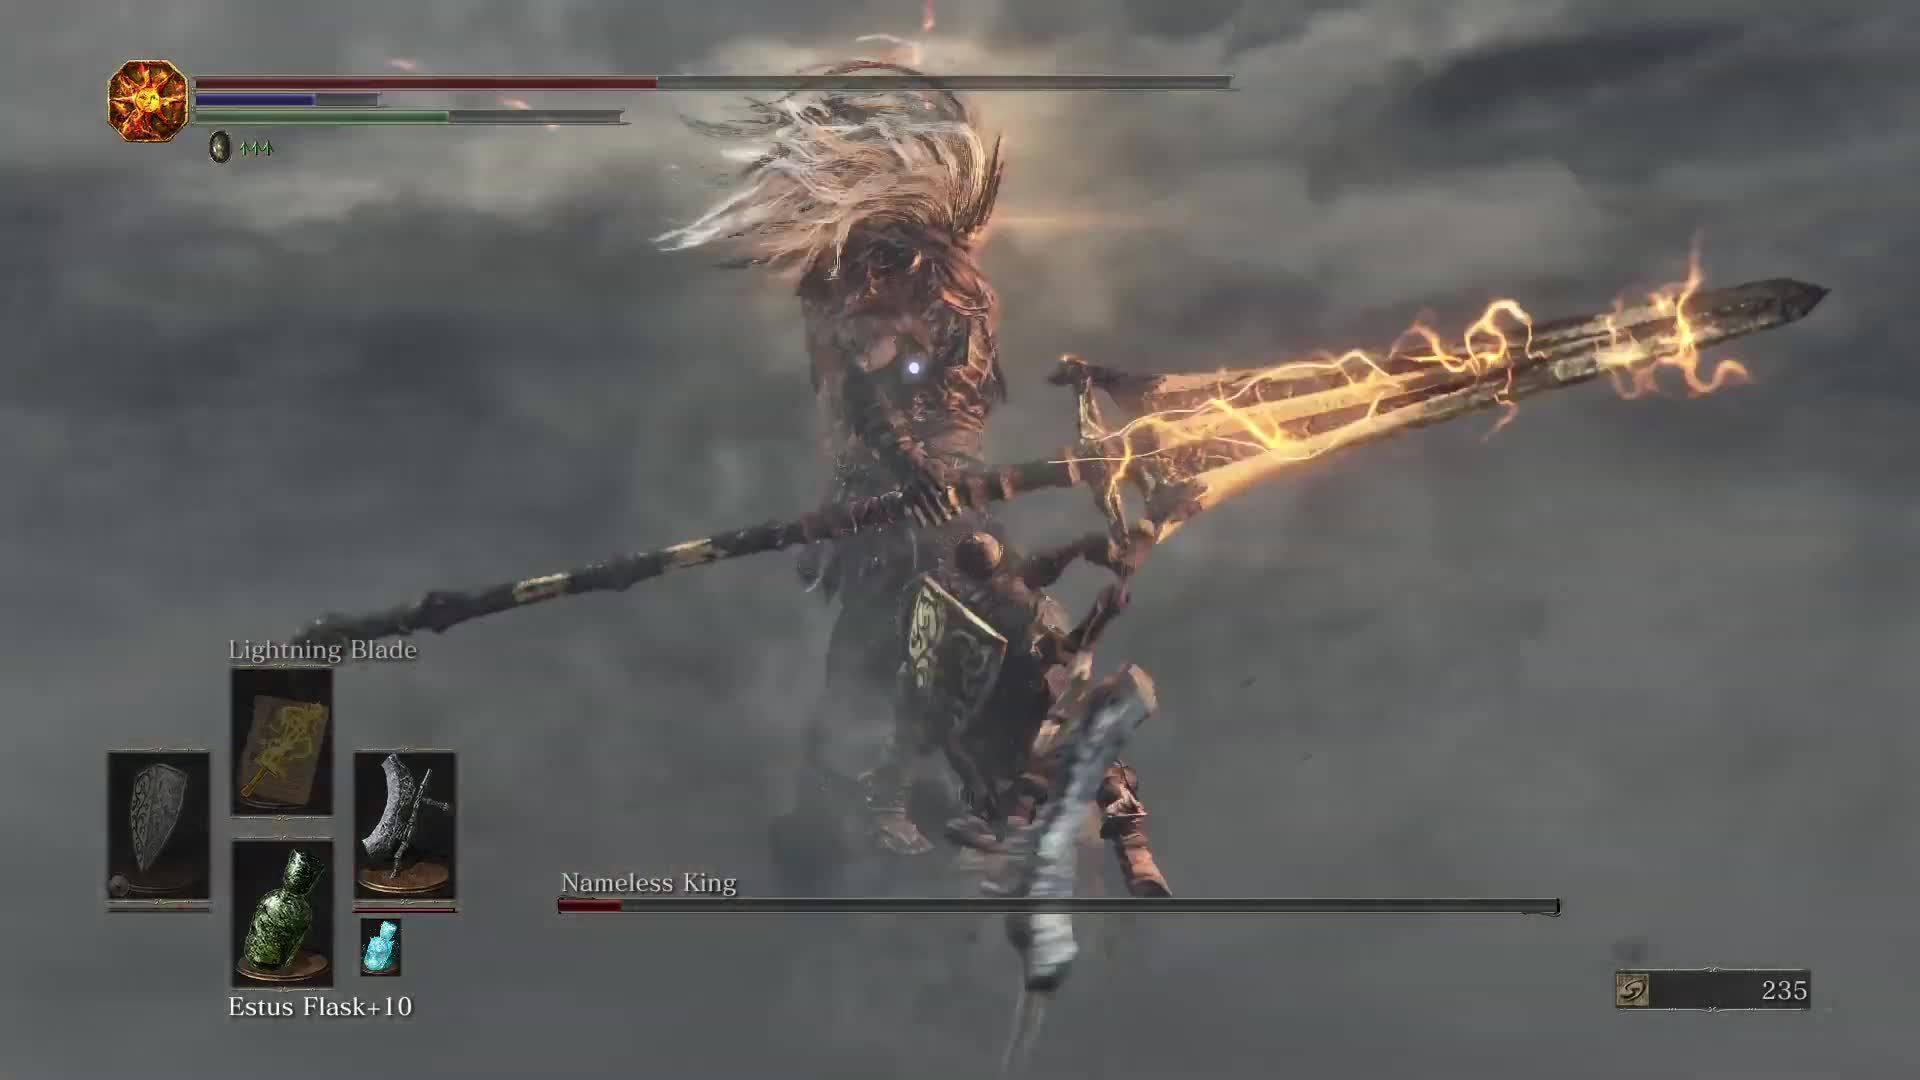 Dark Souls Iii Nameless King Finish Ng Gif By Kaneda18 Gfycat